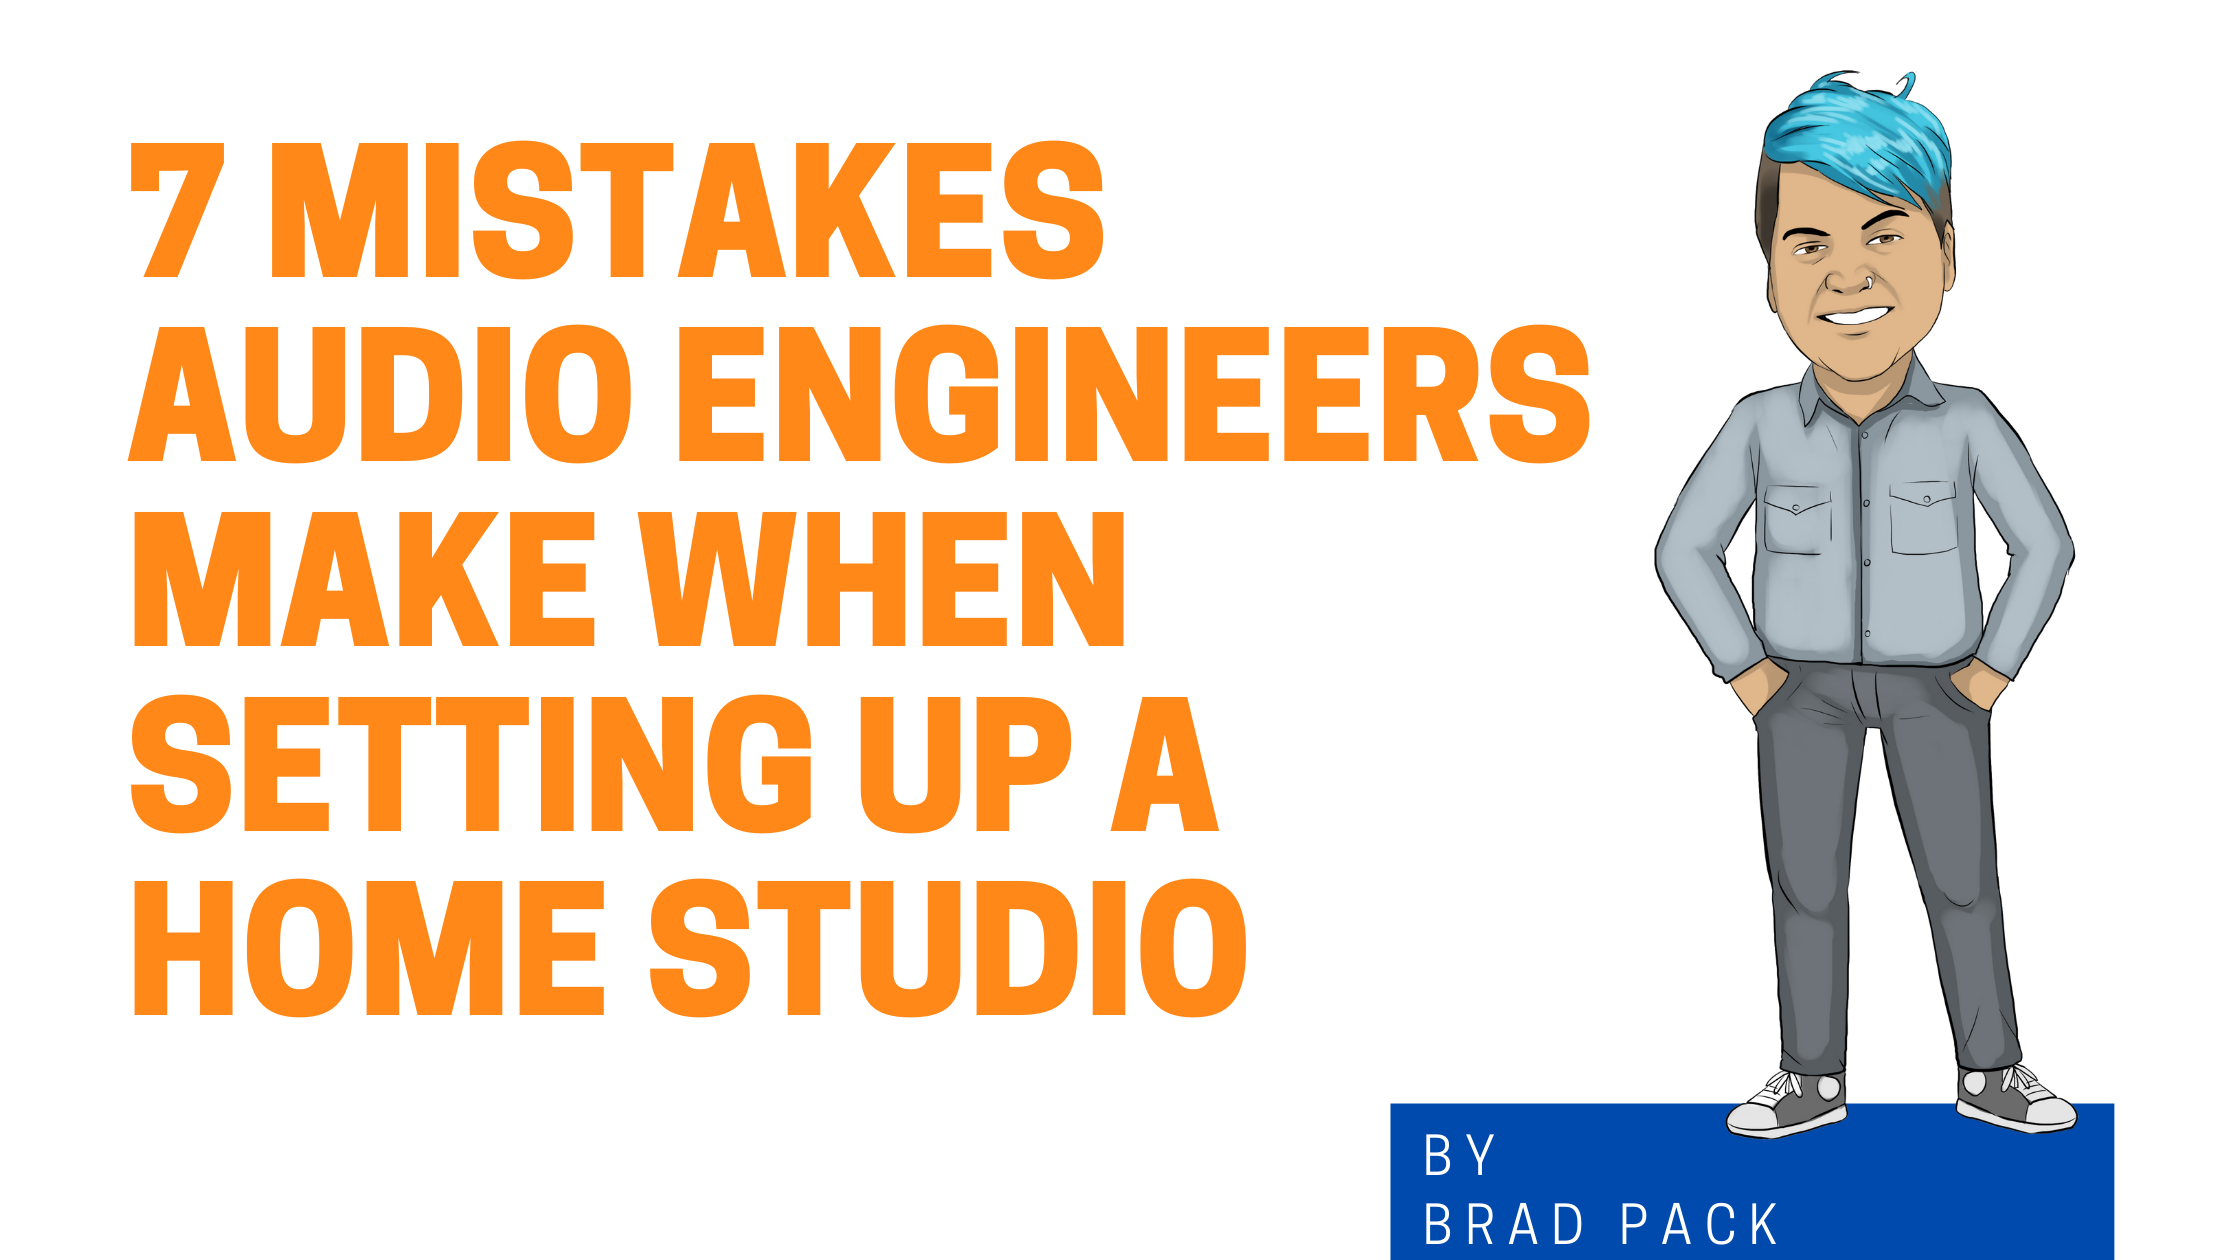 7 Mistakes Audio Engineers Make When Setting Up a Home Studio graphic